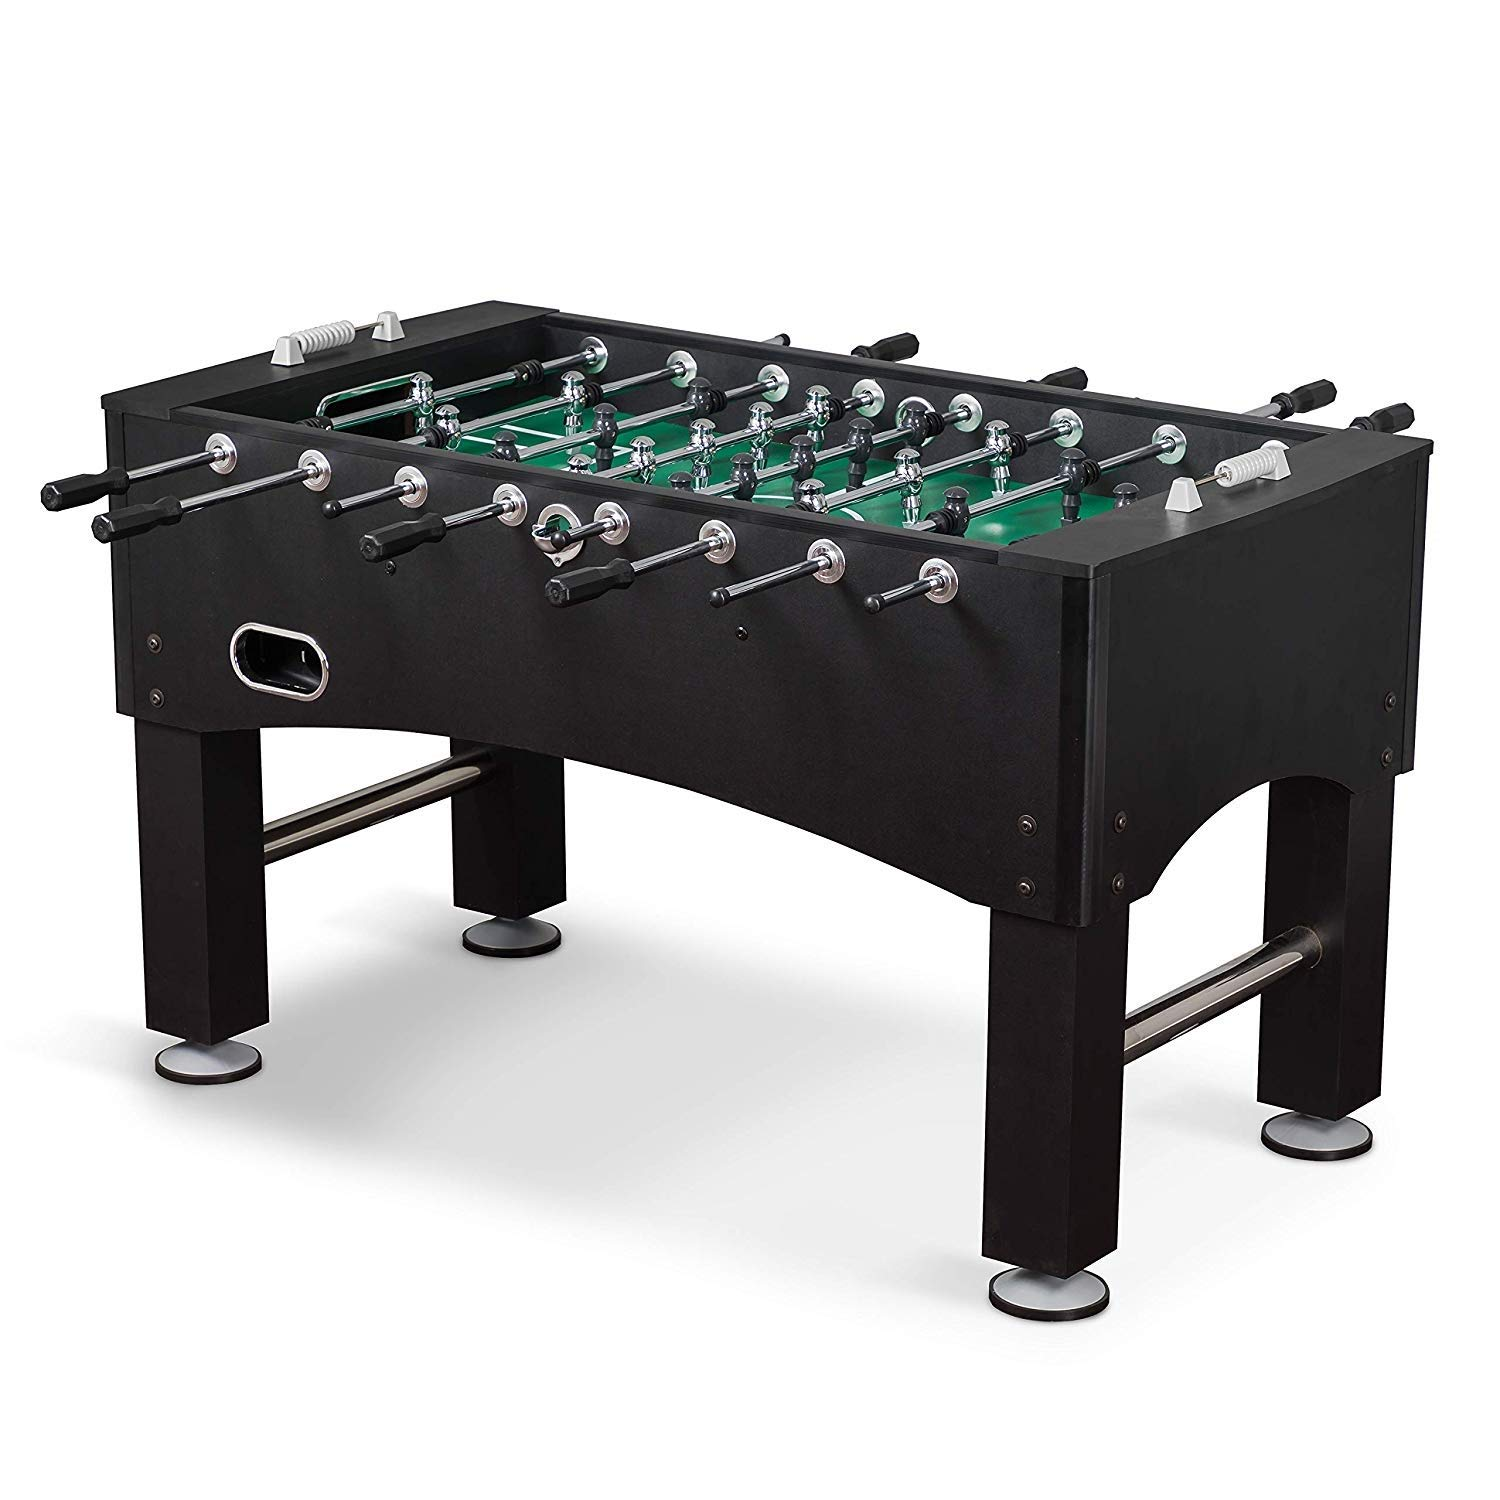 EastPoint Sports League Pro Foosball Table Game - 56 inches - Hollow Steel Player Rods, Bead Style Scoring, and Includes 2 Foosball Balls by EastPoint Sports